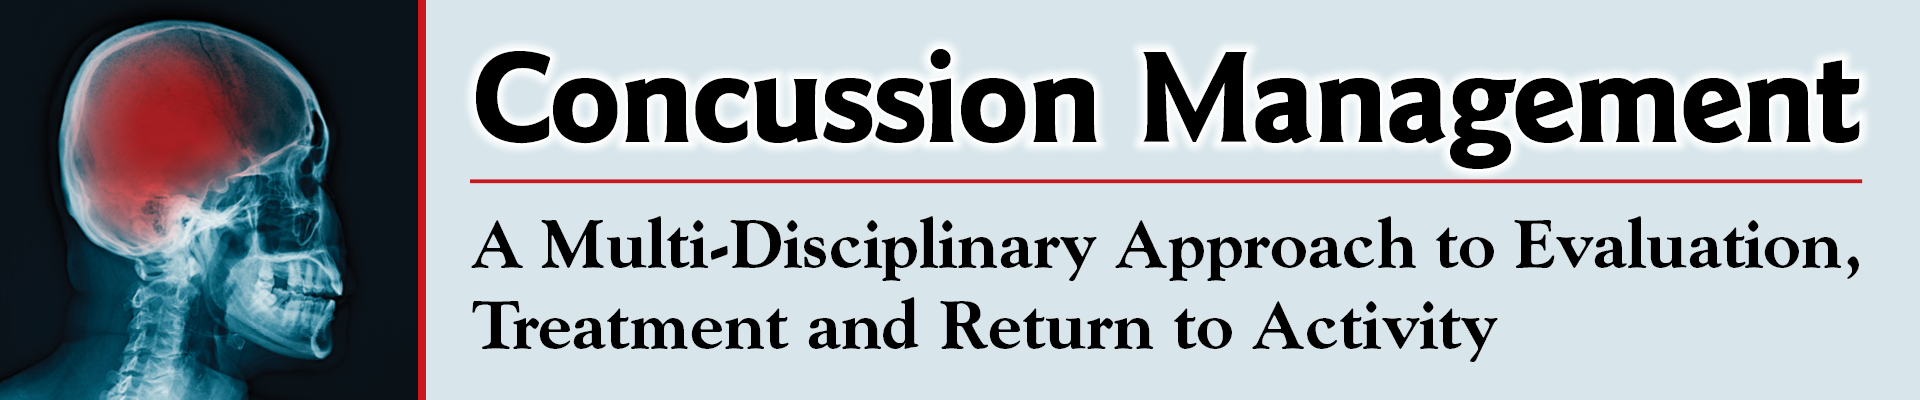 Concussion Management: A Multi-Disciplinary Approach to Evaluation, Treatment and Return to Activity